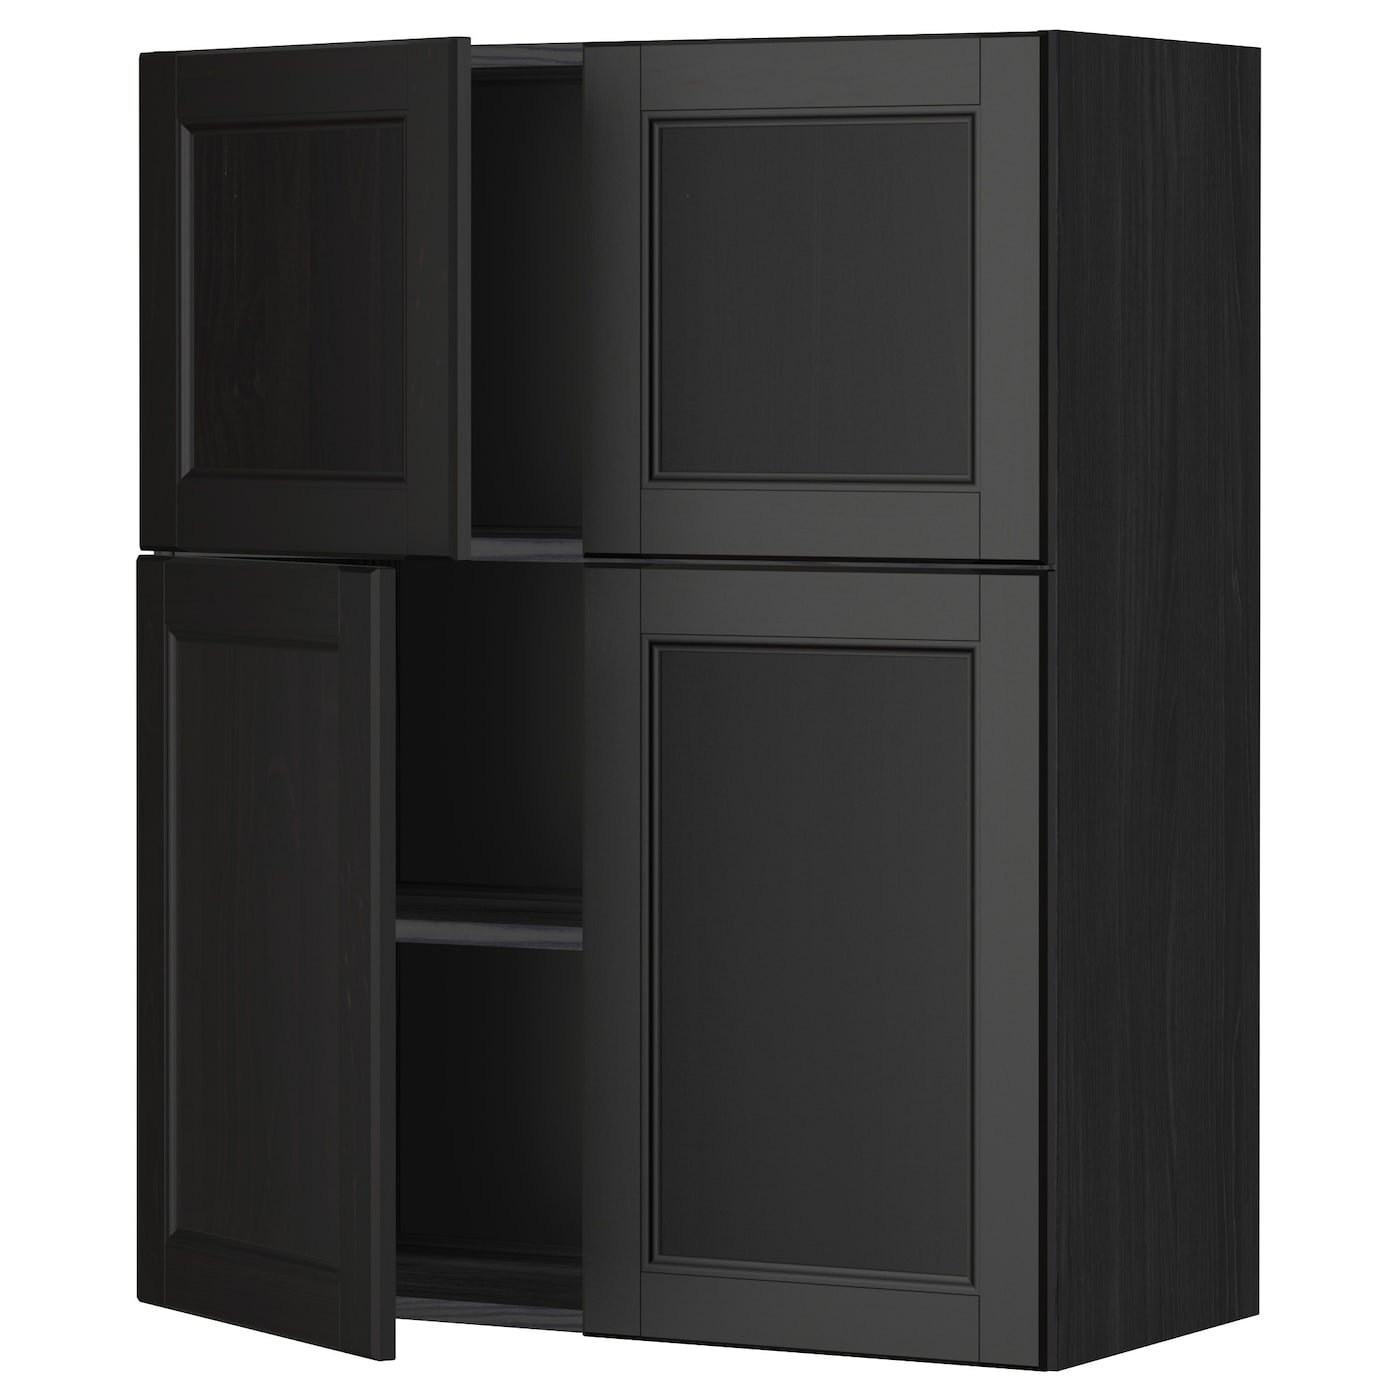 metod wall cabinet with shelves 4 doors black laxarby. Black Bedroom Furniture Sets. Home Design Ideas